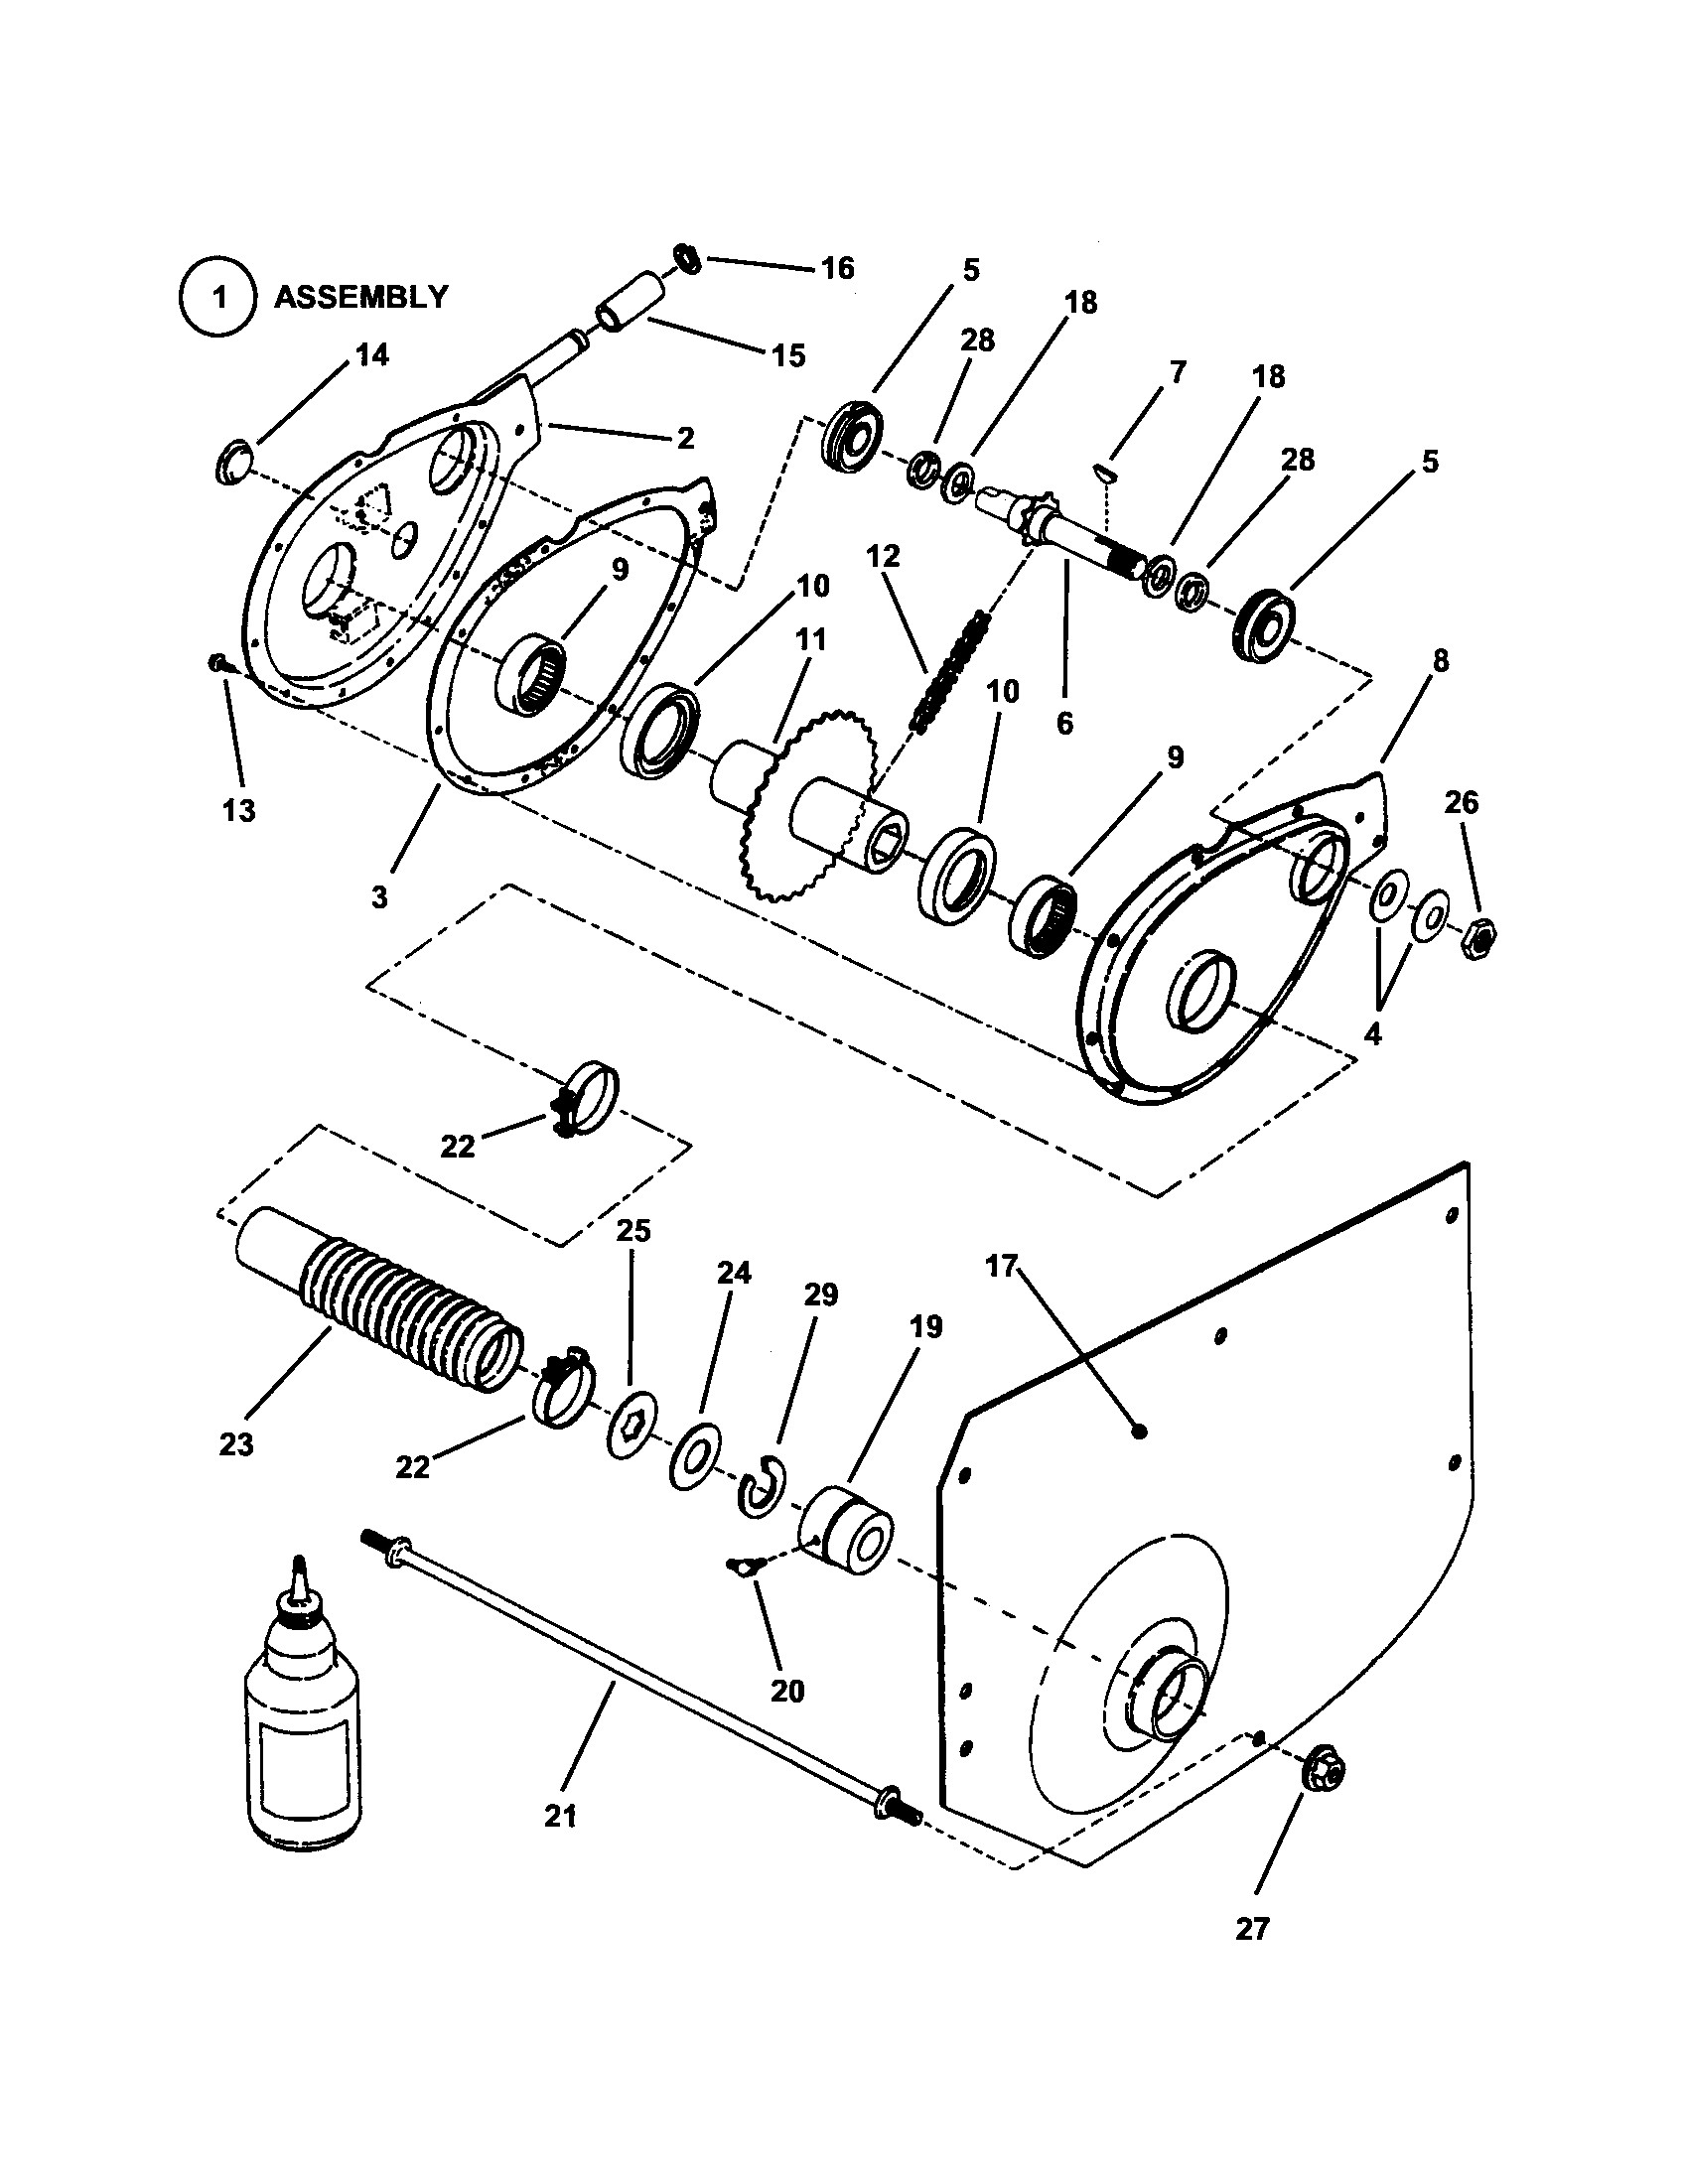 dixon lawn mower parts diagram 917 craftsman 26 hp 54 inch